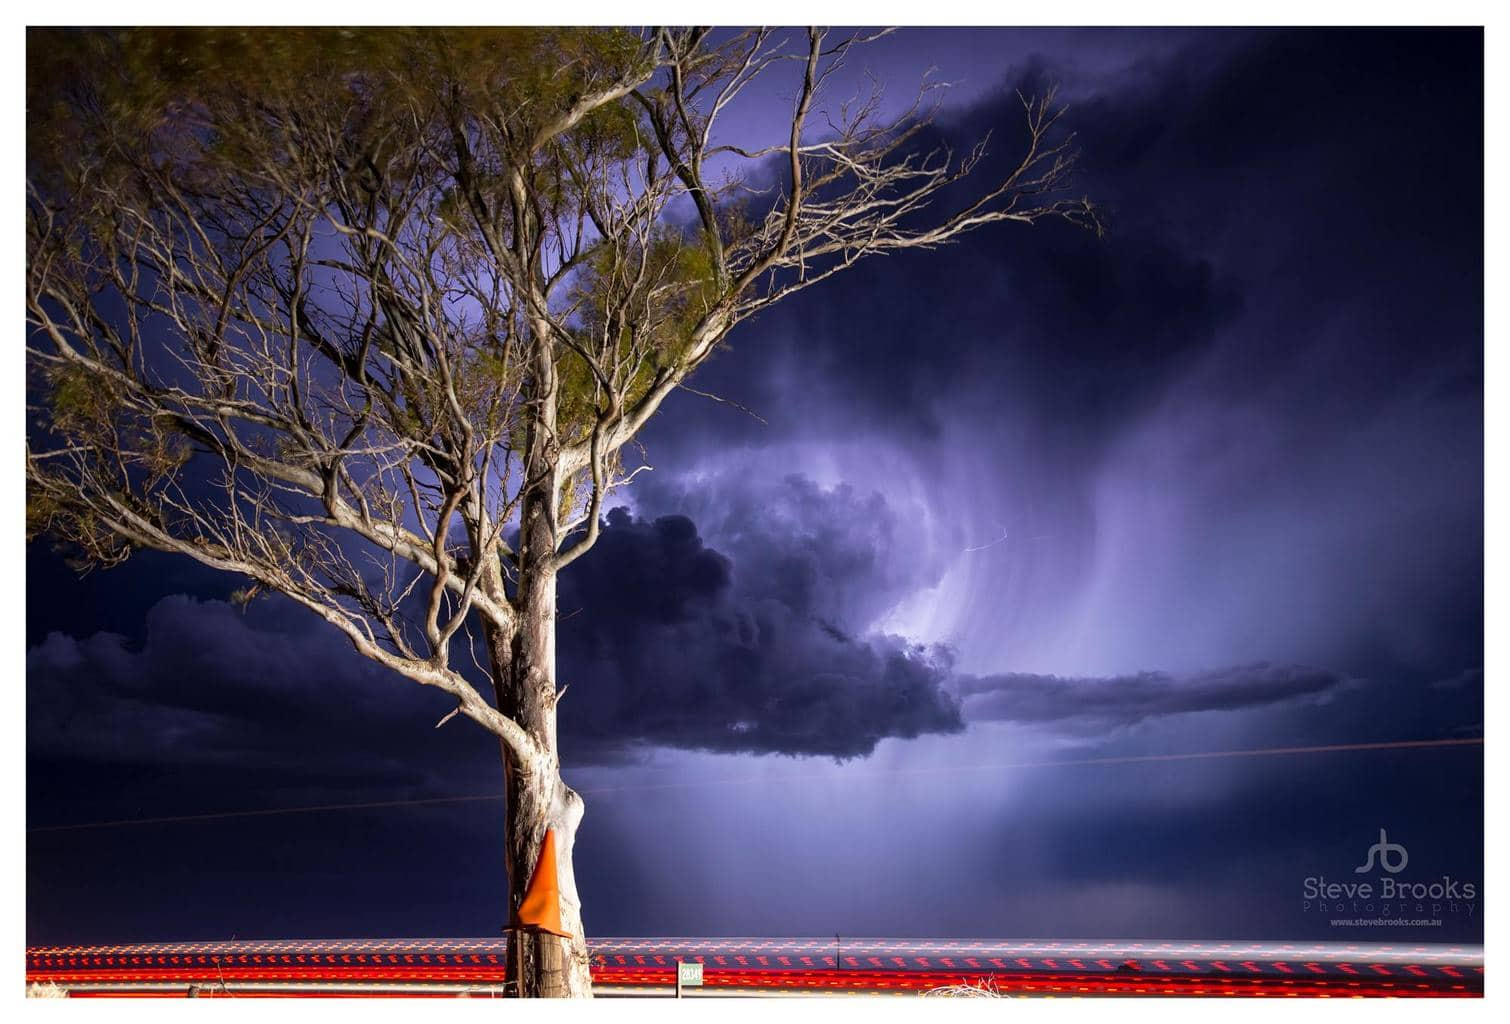 Storm Season is beginning here in Australia. Here is one from the first storm of 2013 in the Western Australian Wheatbelt.